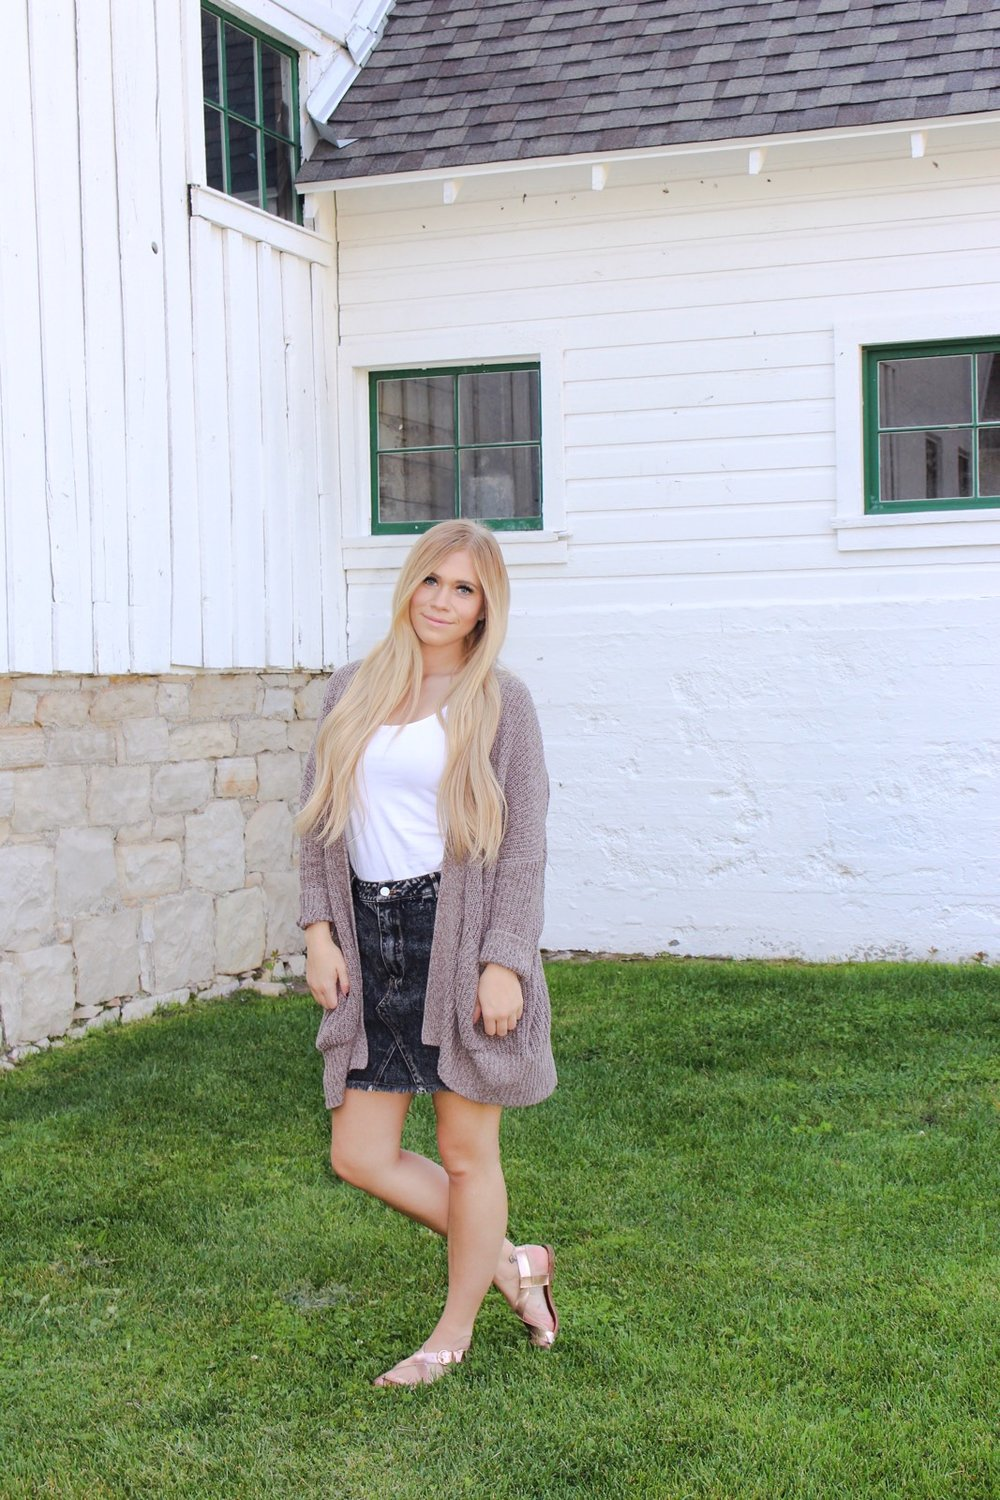 This outfit is the perfect amount of summer and fall combined, a distressed, black denim skirt with a white t shirt. But throw on a loose fitting cardigan and your ready for the cooler temps without being too hot. I paired it with some rose gold sandals so that it still feels casual enough before booty season arrives!